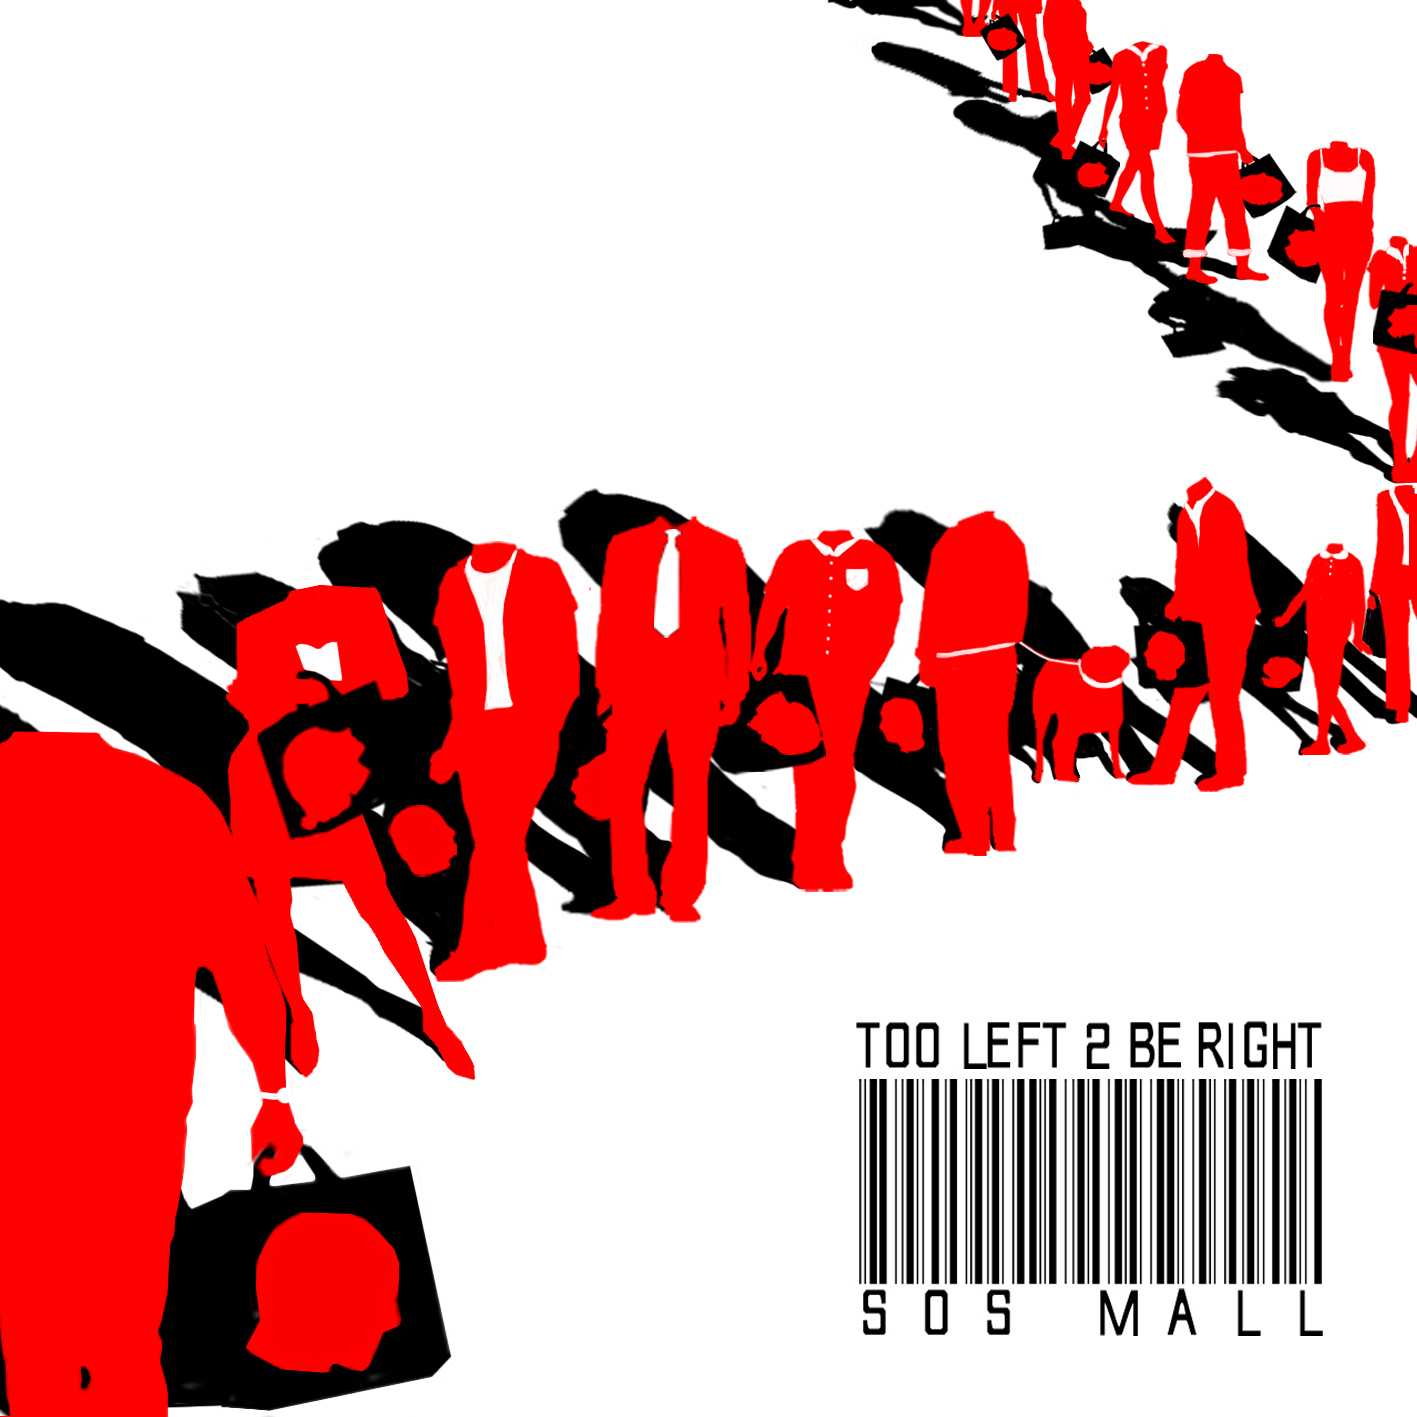 Too Left 2 Be Right - SOS Mall - Album Cover